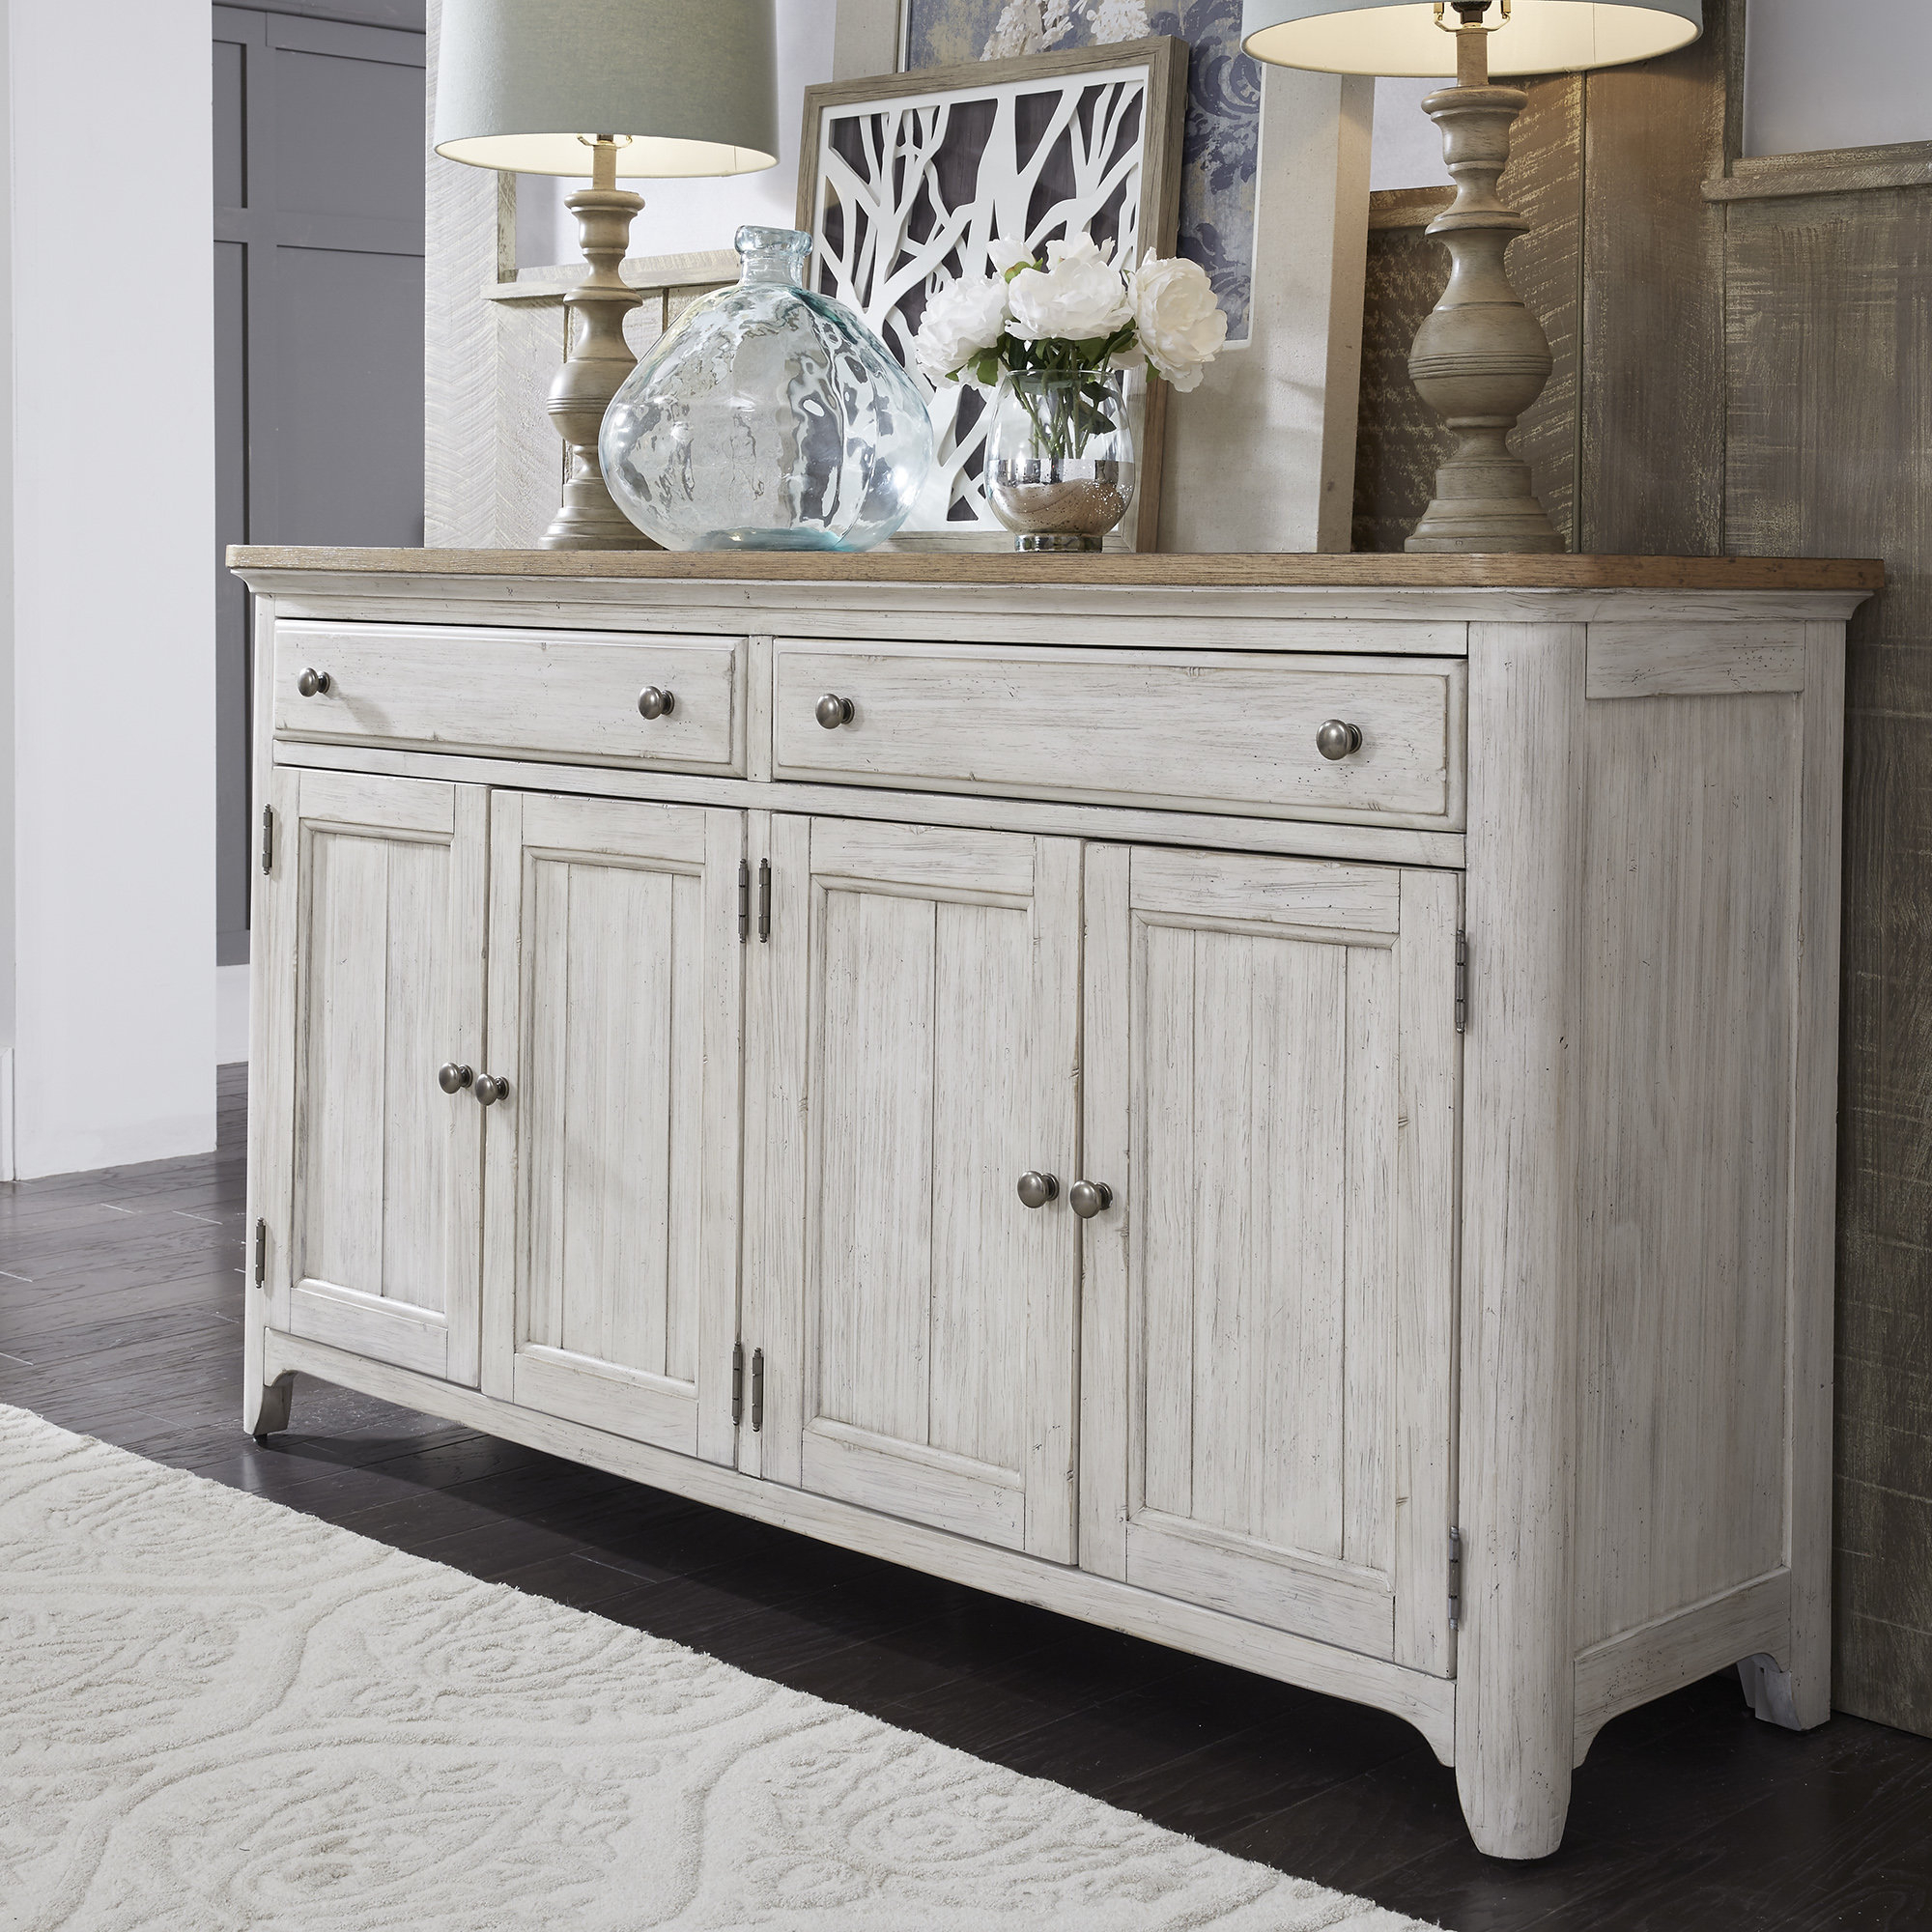 Konen Sideboard & Reviews | Birch Lane With Regard To Courtdale Sideboards (View 14 of 20)